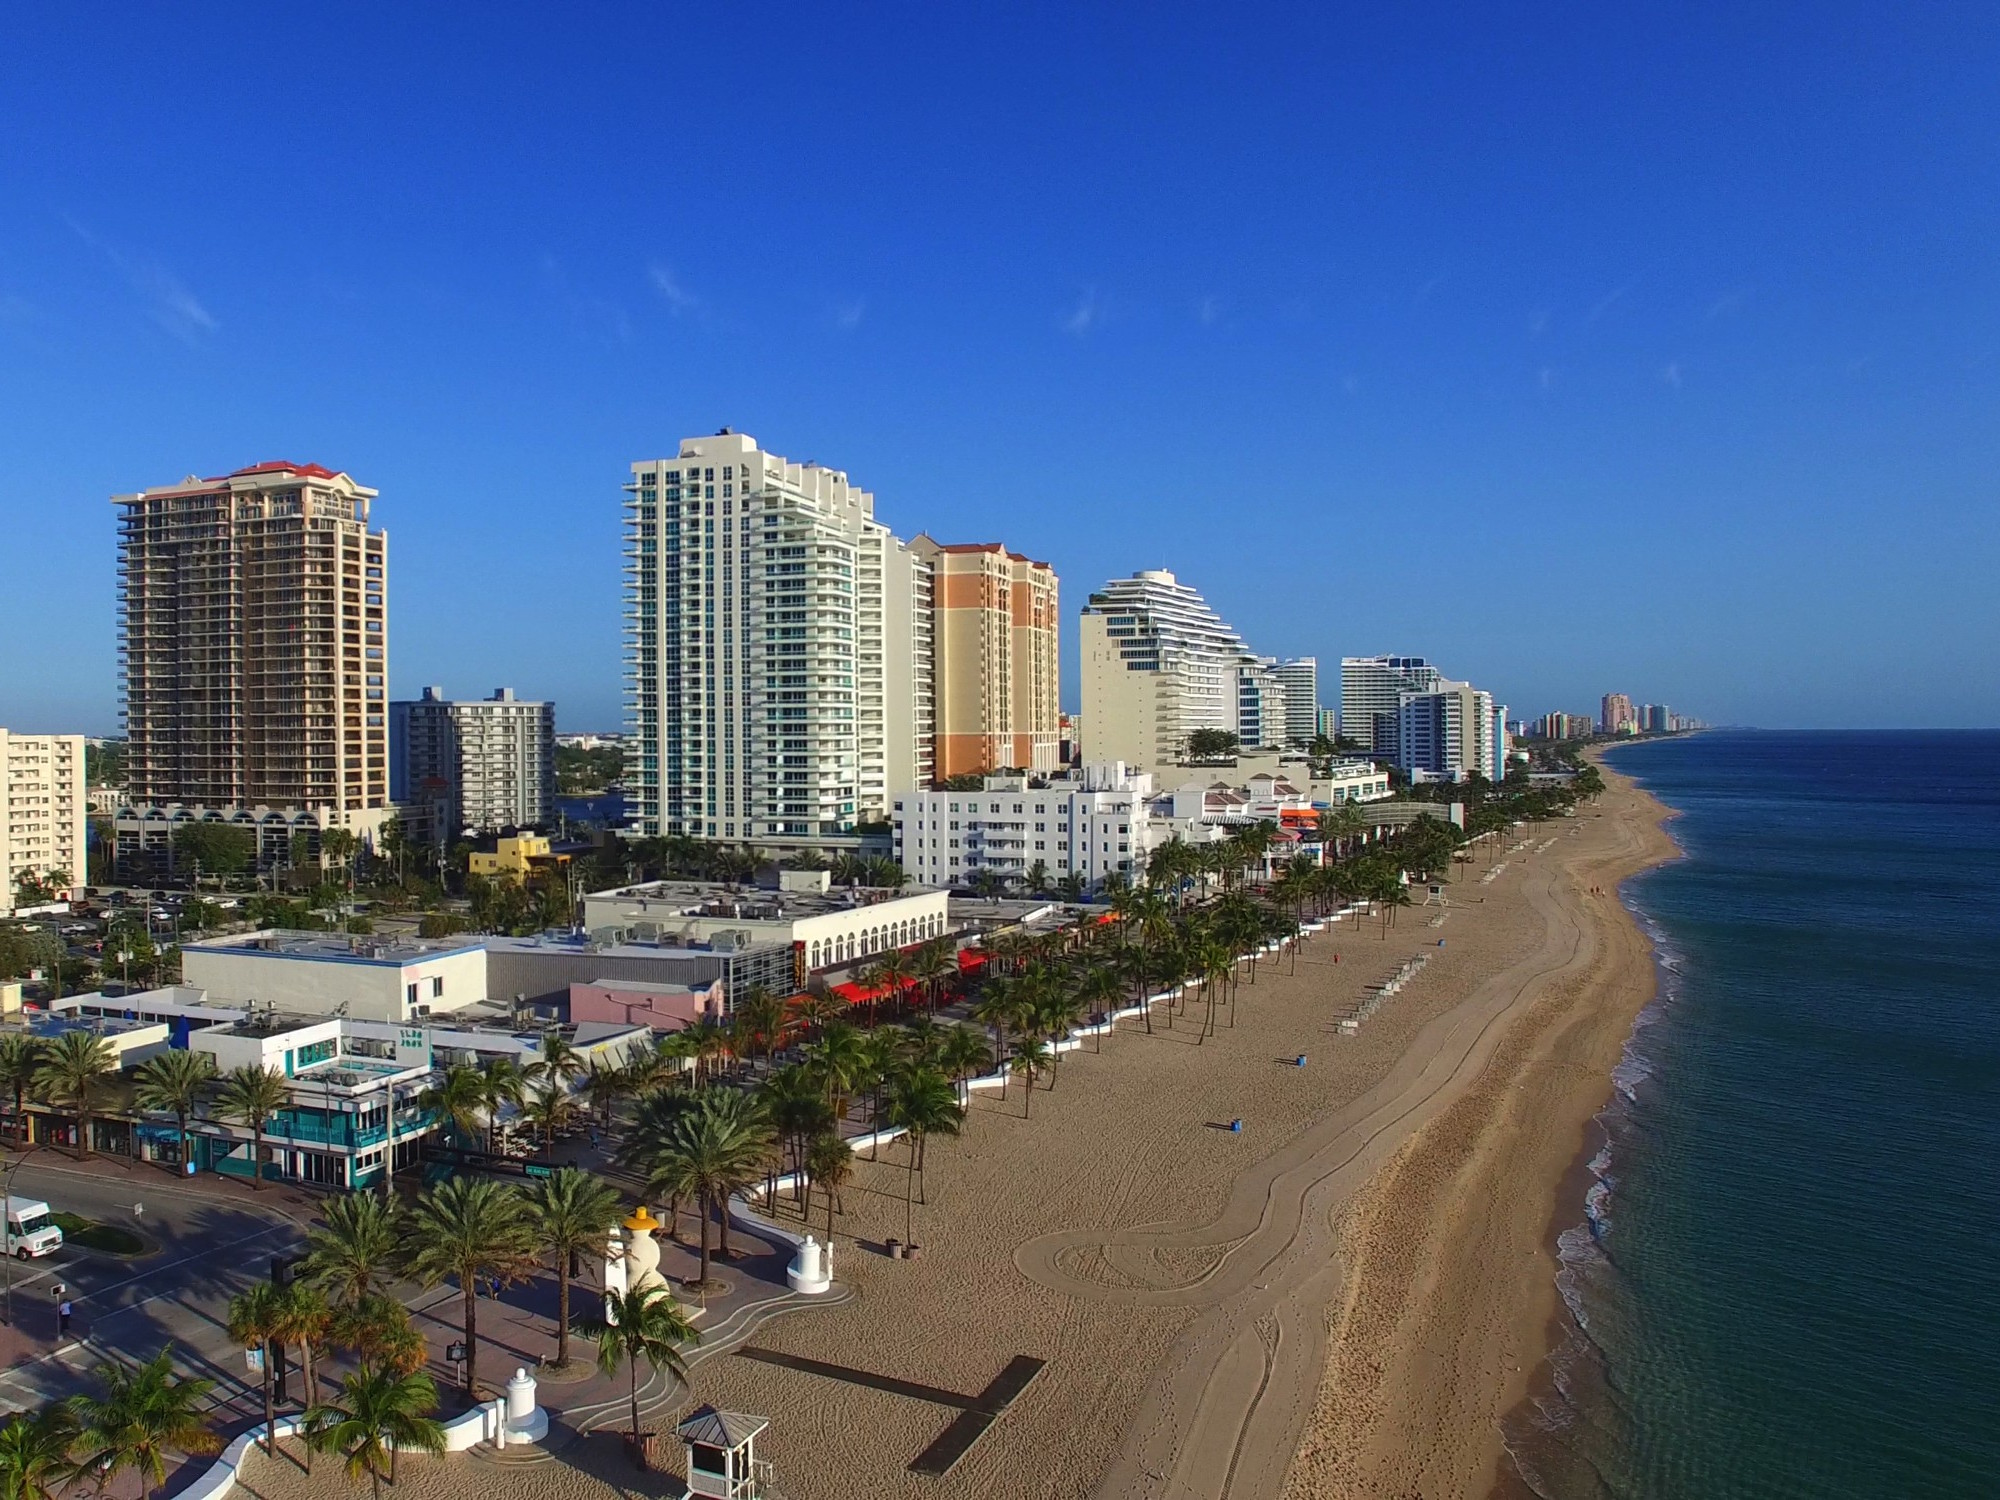 Ft. Lauterdale Skyline and Beach.jpg